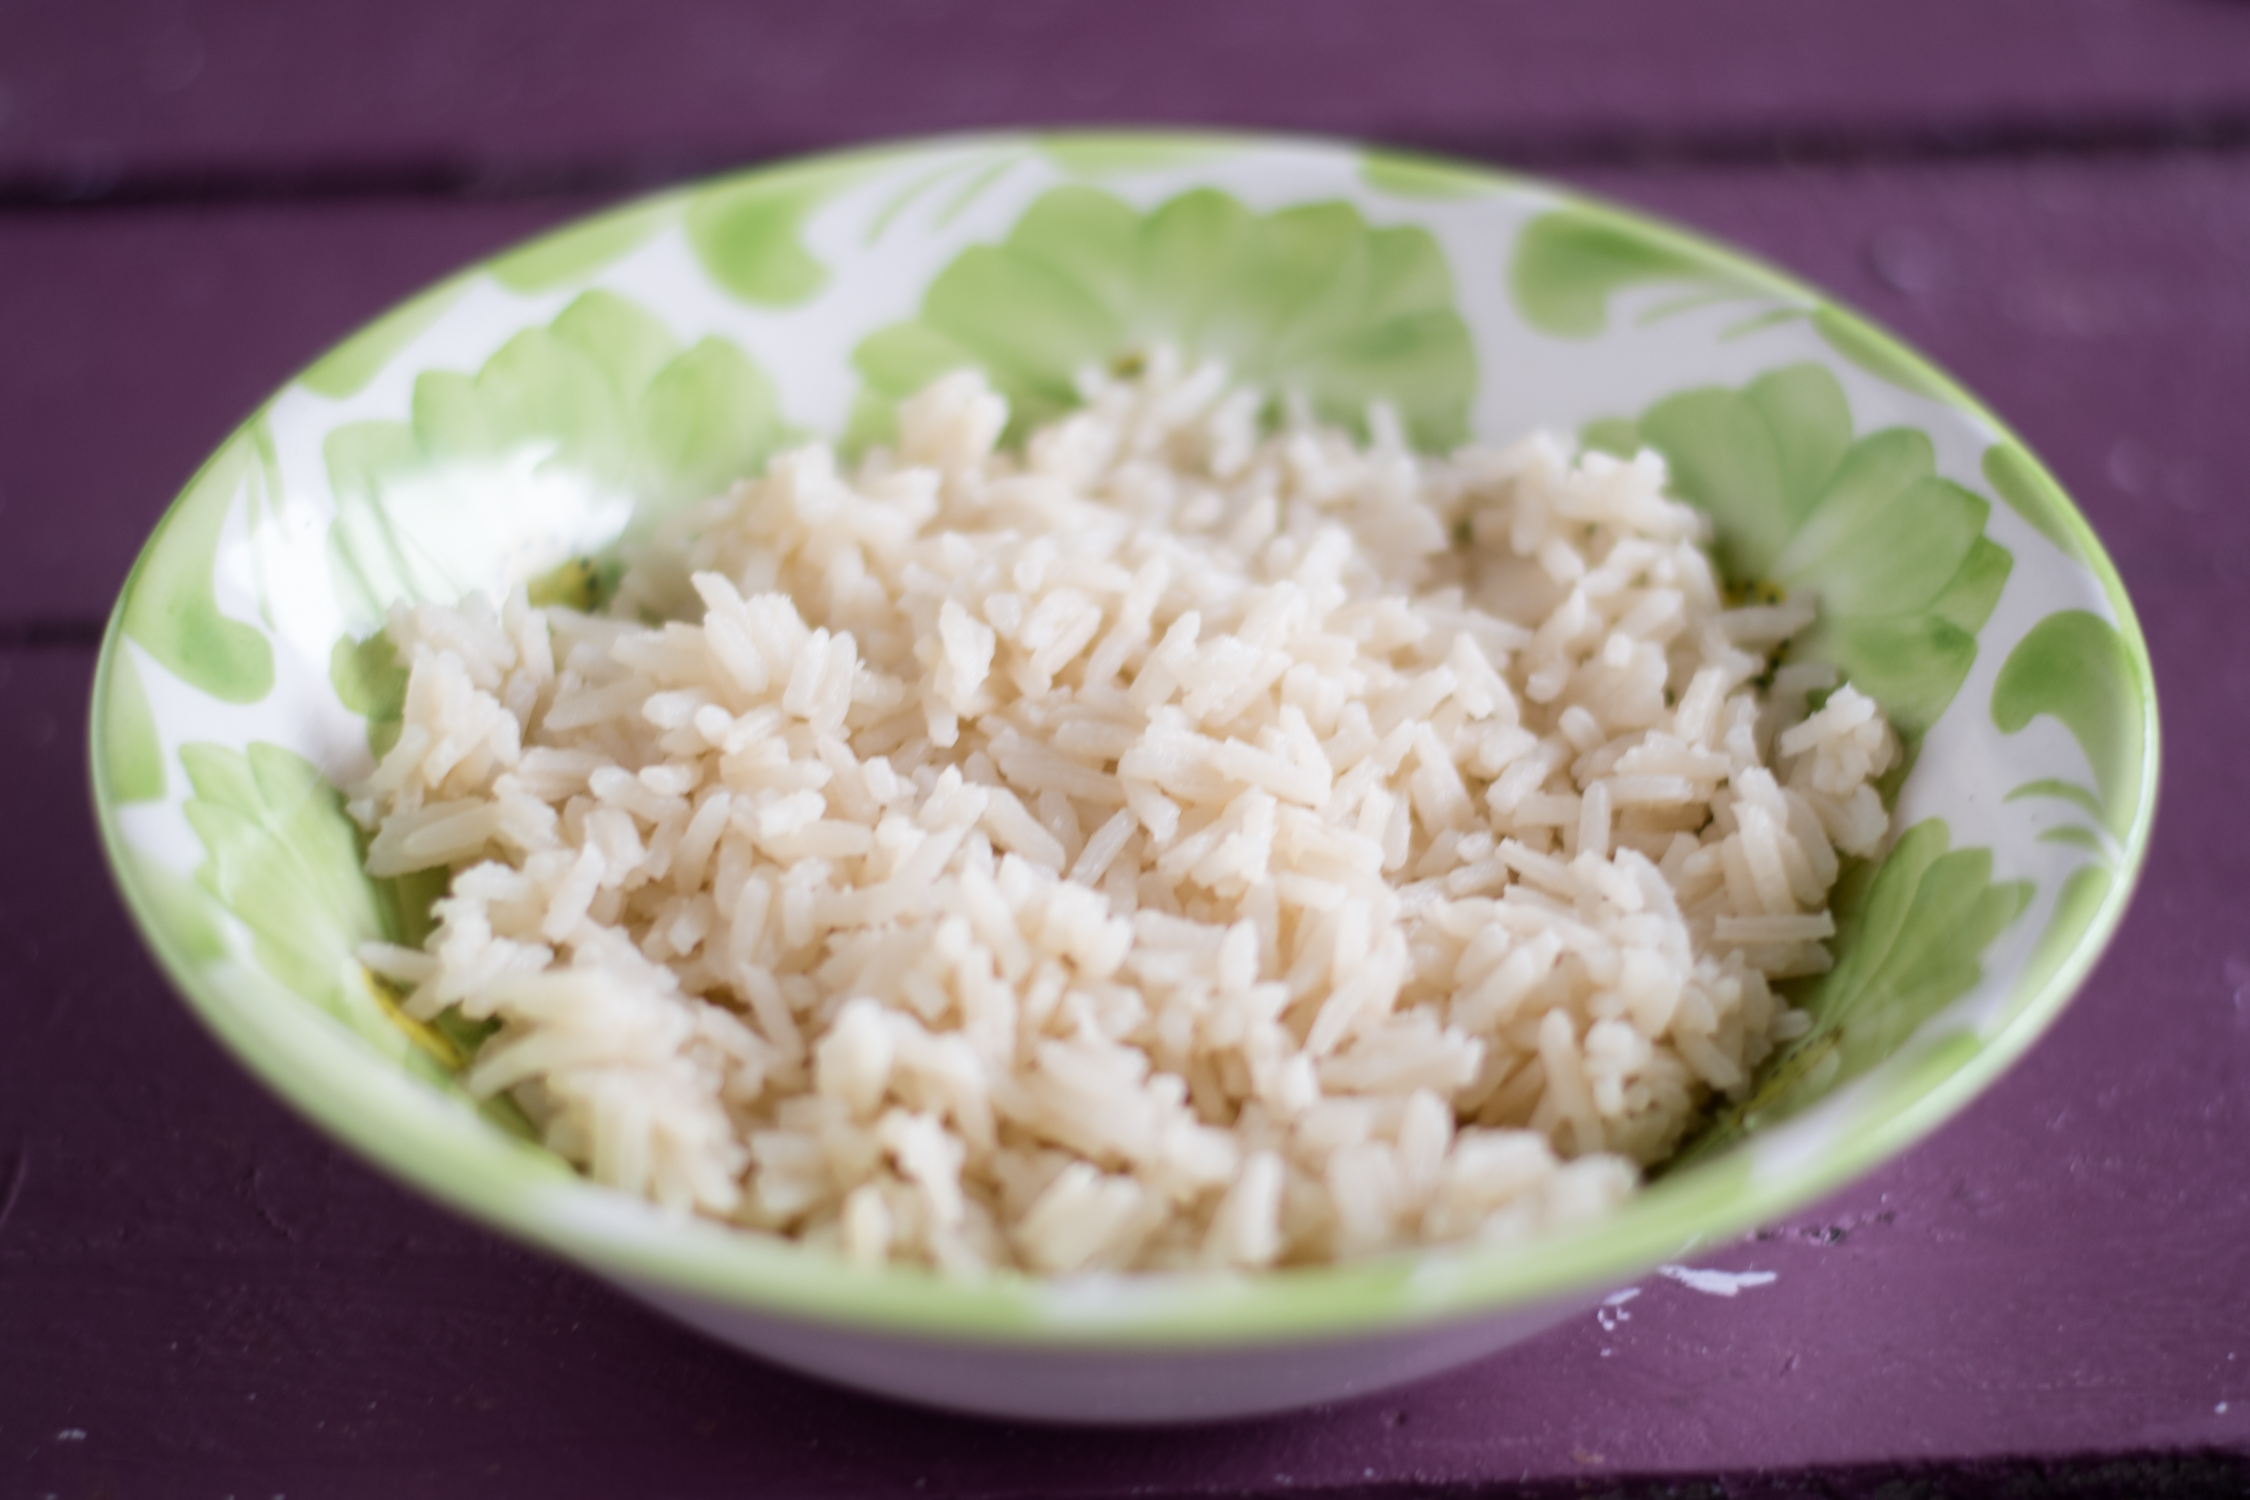 ooking rice in brewed green tea adds so much flavor to the rice. #rice #Asian #greentea #vegan #side #easyrecipes